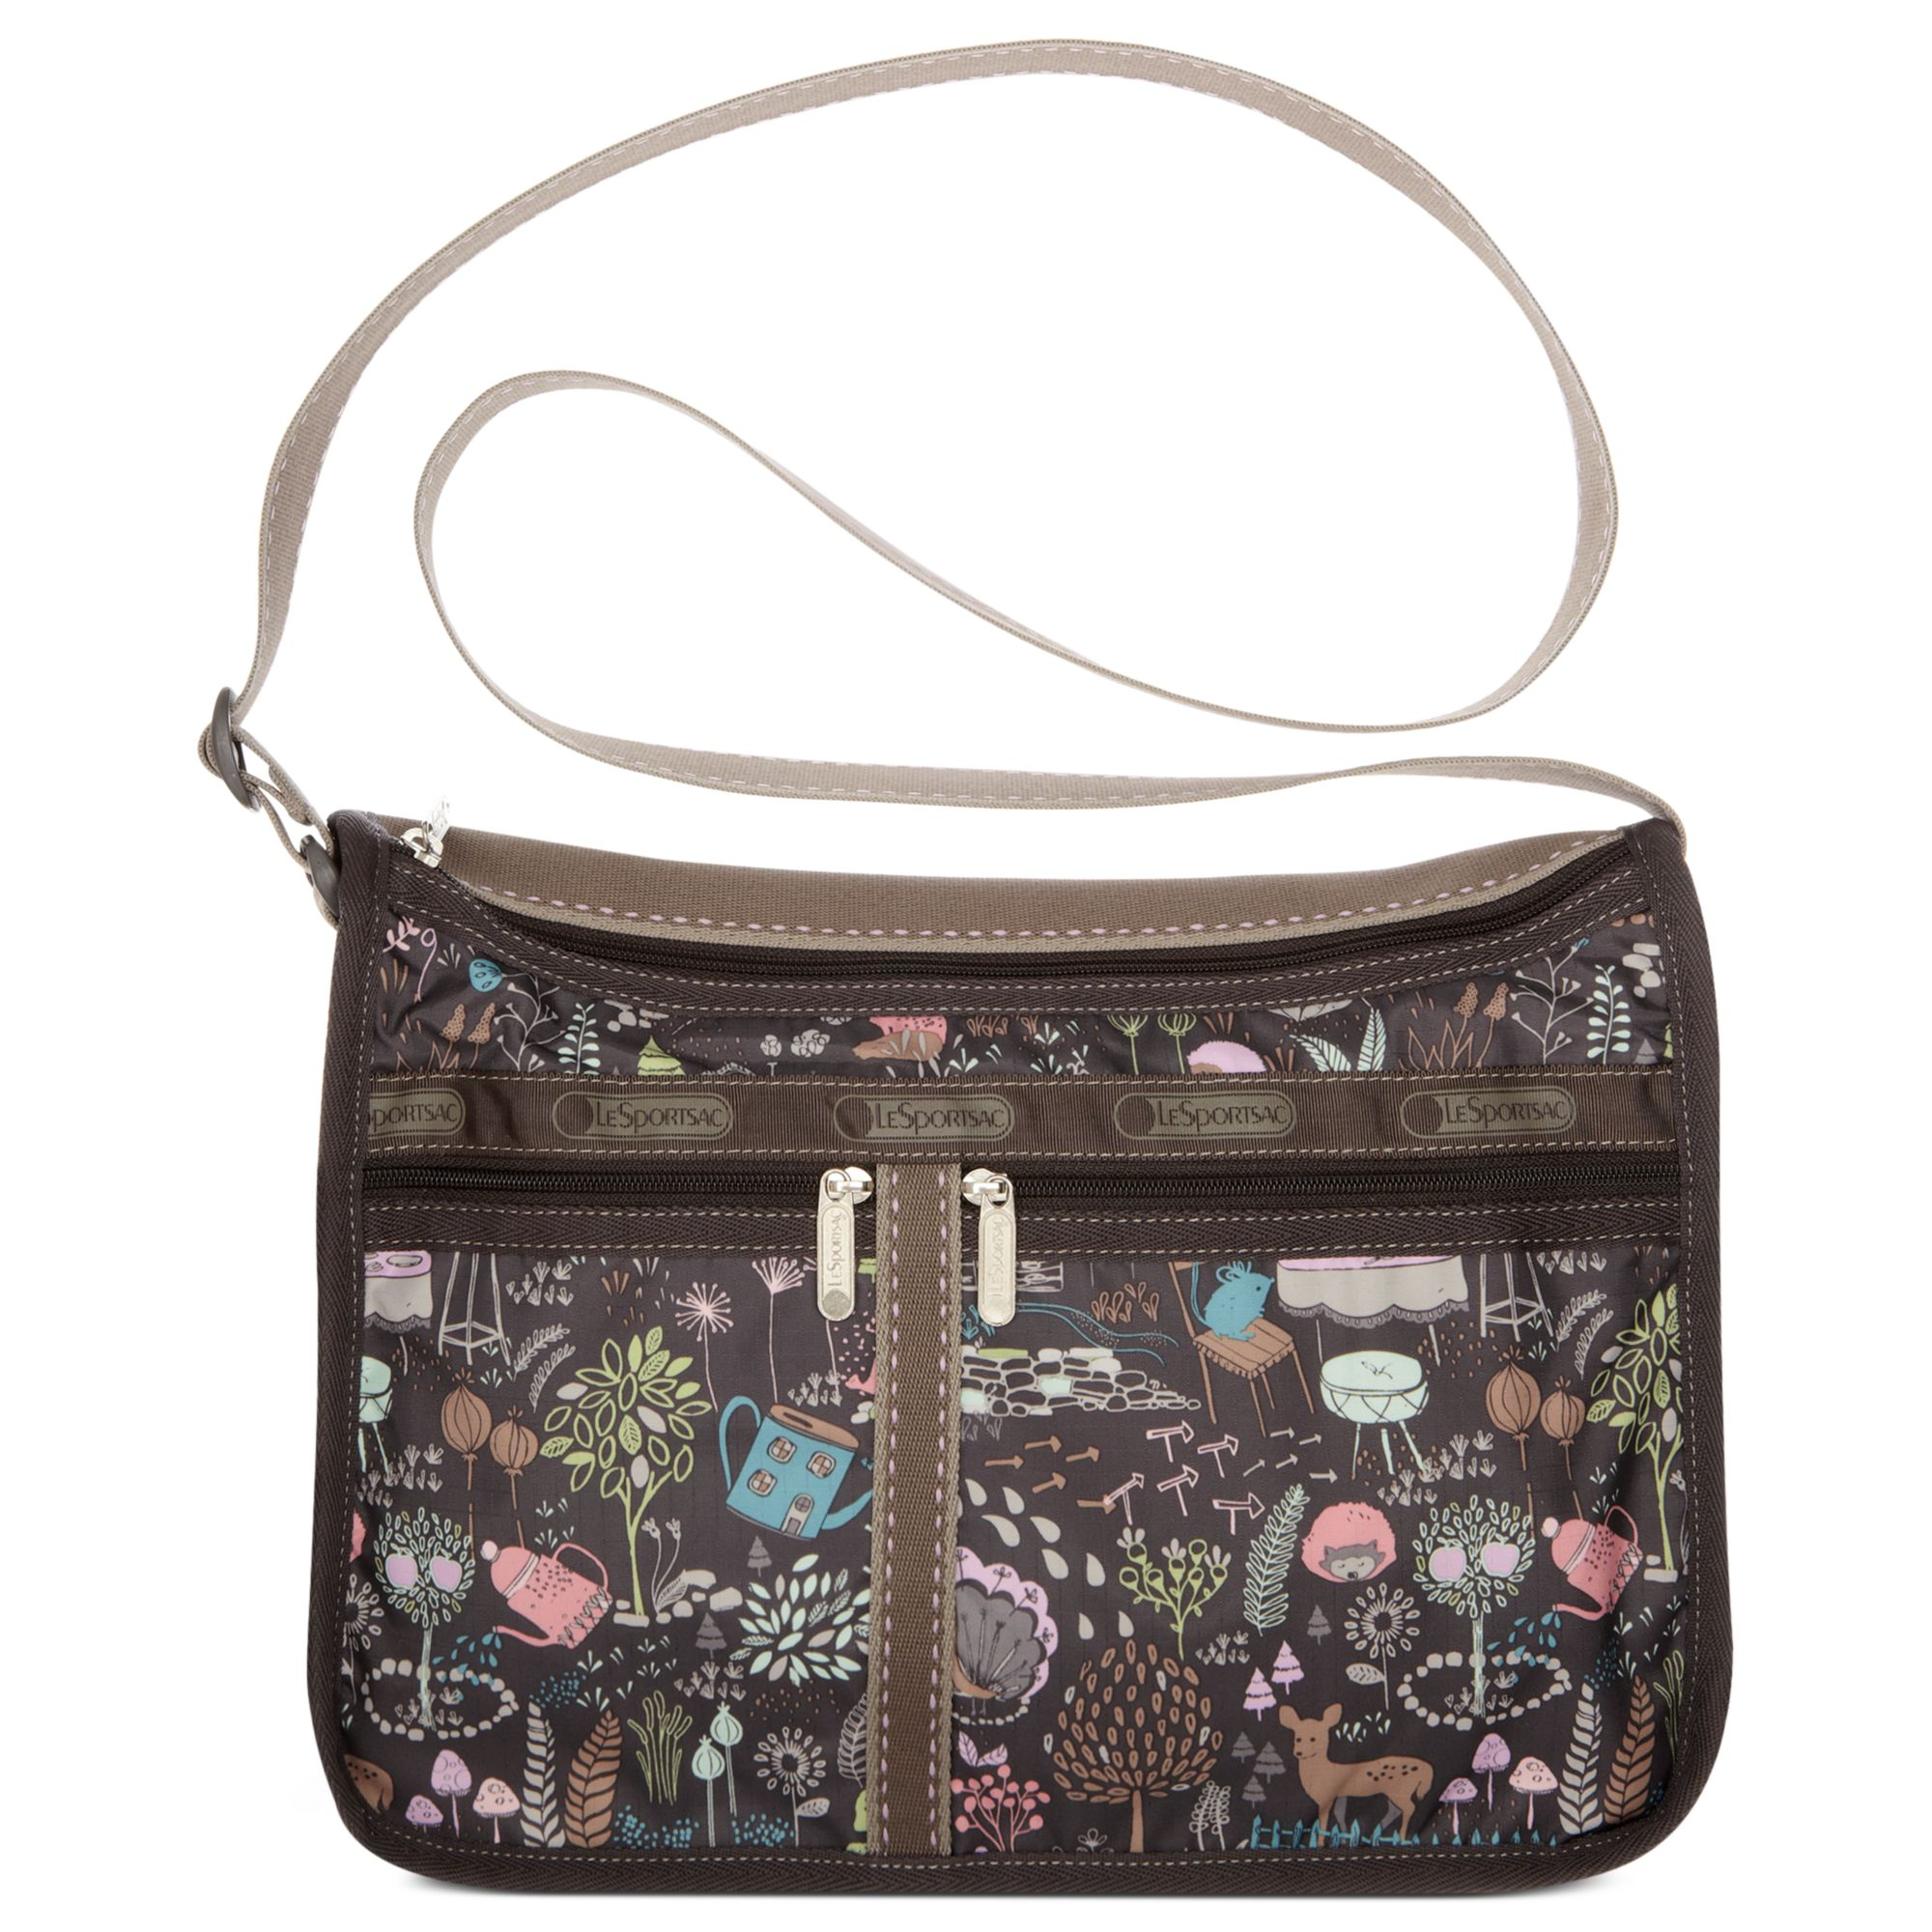 Lyst Lesportsac Deluxe Everyday Bag